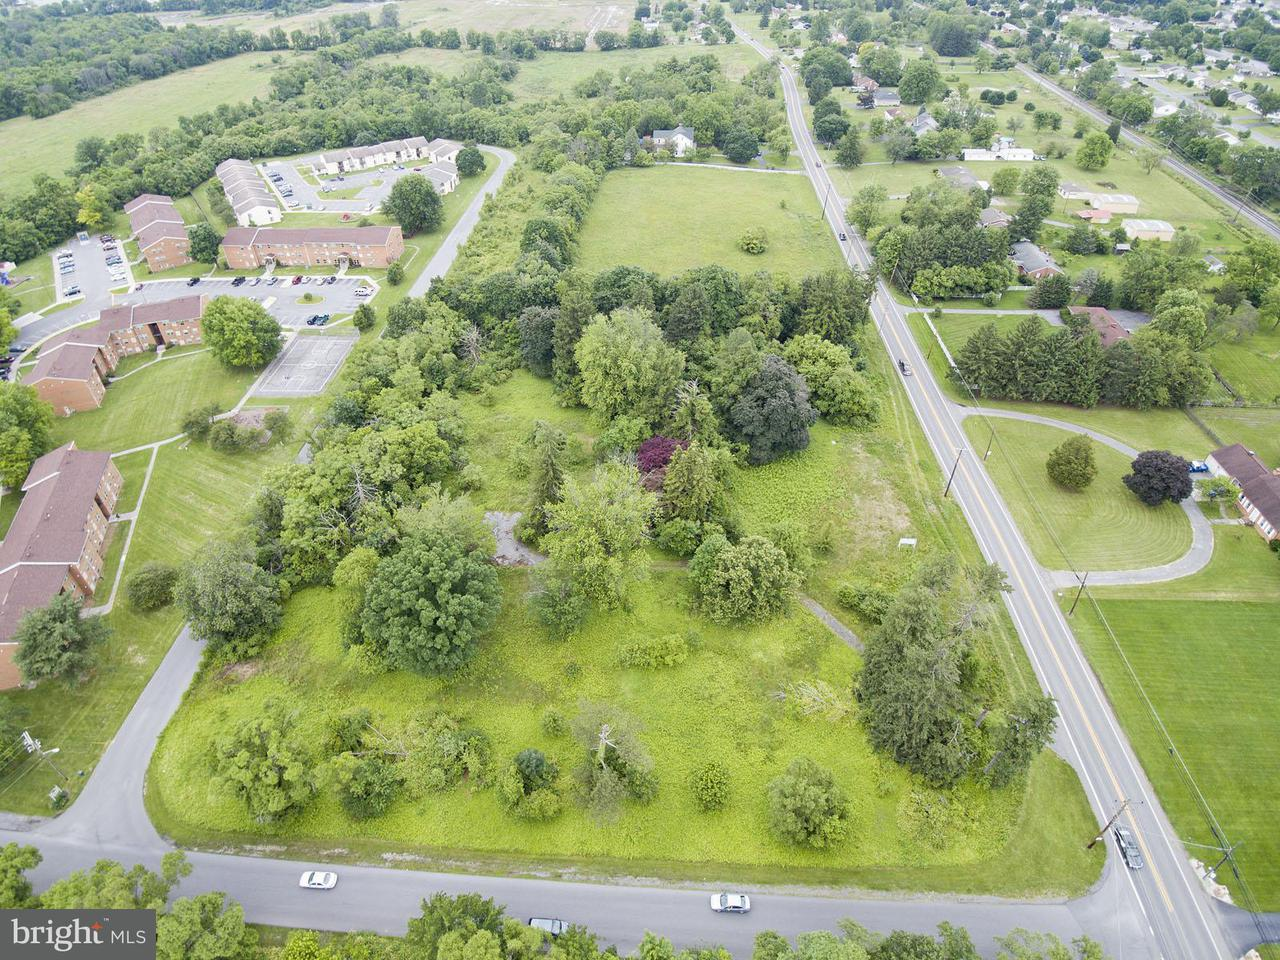 Land for Sale at 843 Williamsport Pike Martinsburg, West Virginia 25401 United States